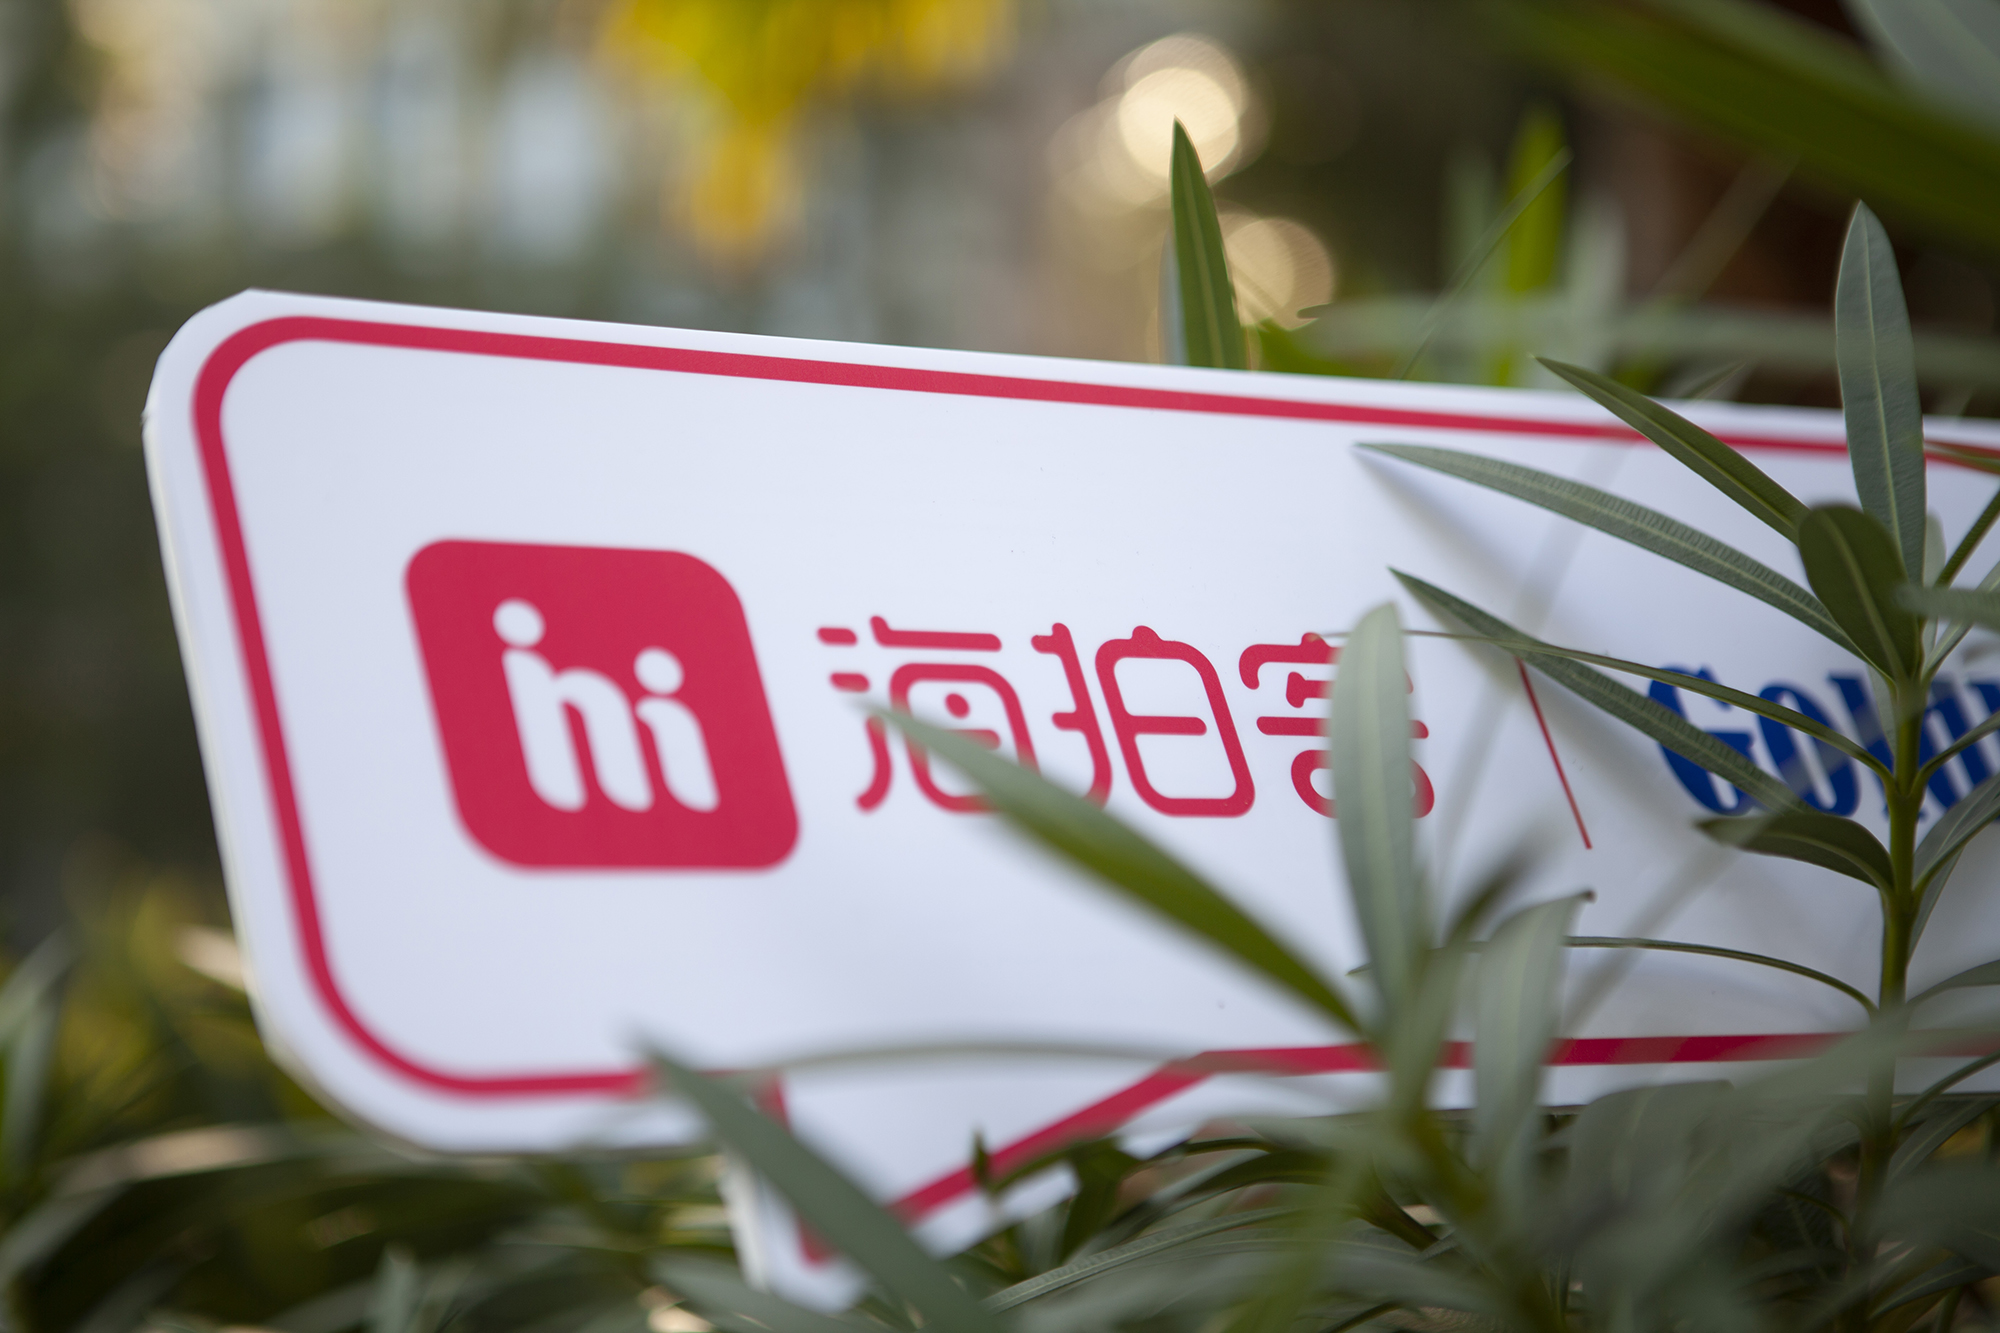 China's Maternal and Child Service B2B2C Platform Hipac Raised Hundreds of Millions of Dollars in a Series D Round Funding Led by Anchor Equity Partners